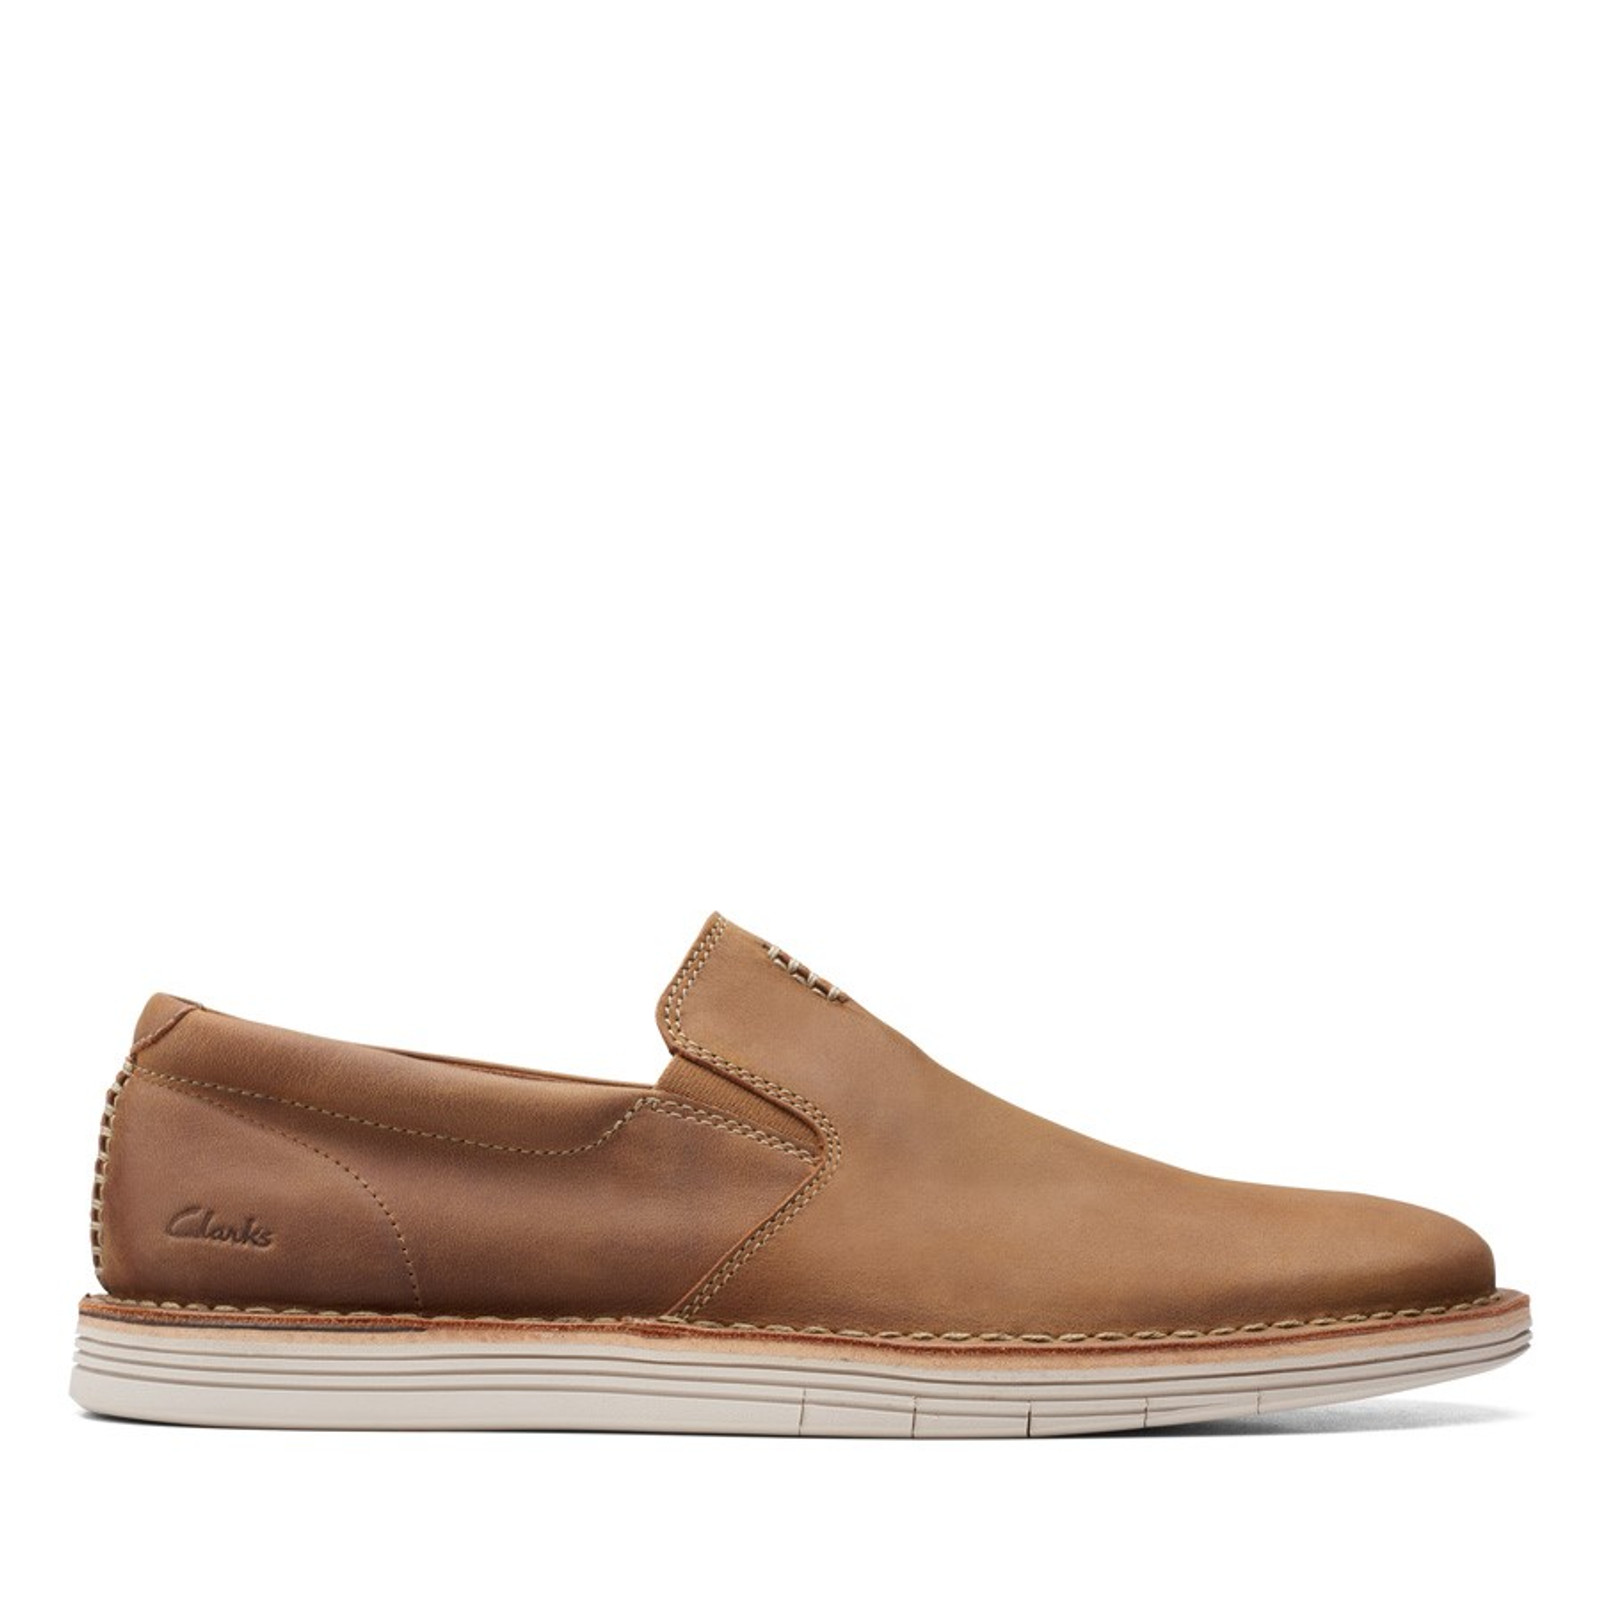 Clarks Mens FORGE FREE Tan Leather